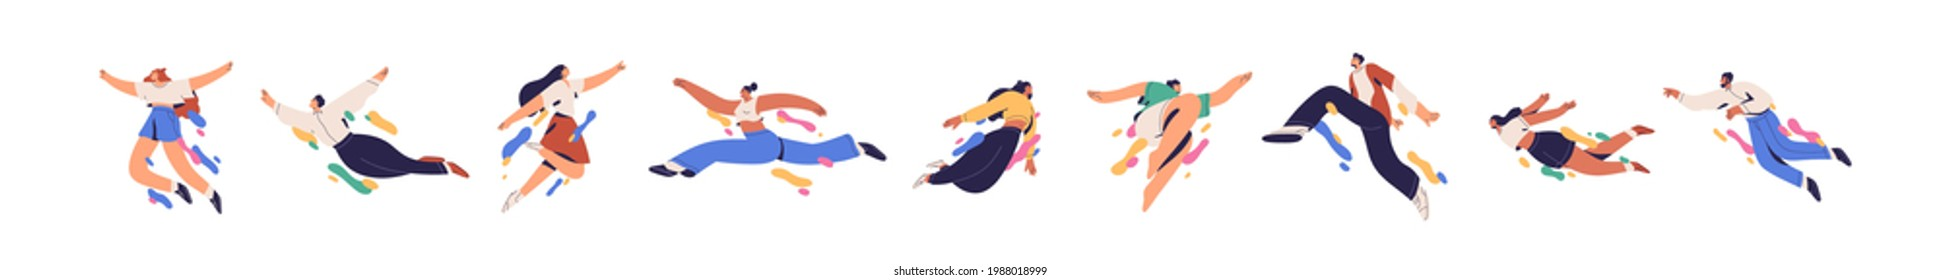 Happy free people flying, floating and jumping in air. Concept of freedom, development and aspirations. Men and women moving forward. Colored flat vector illustration isolated on white background.